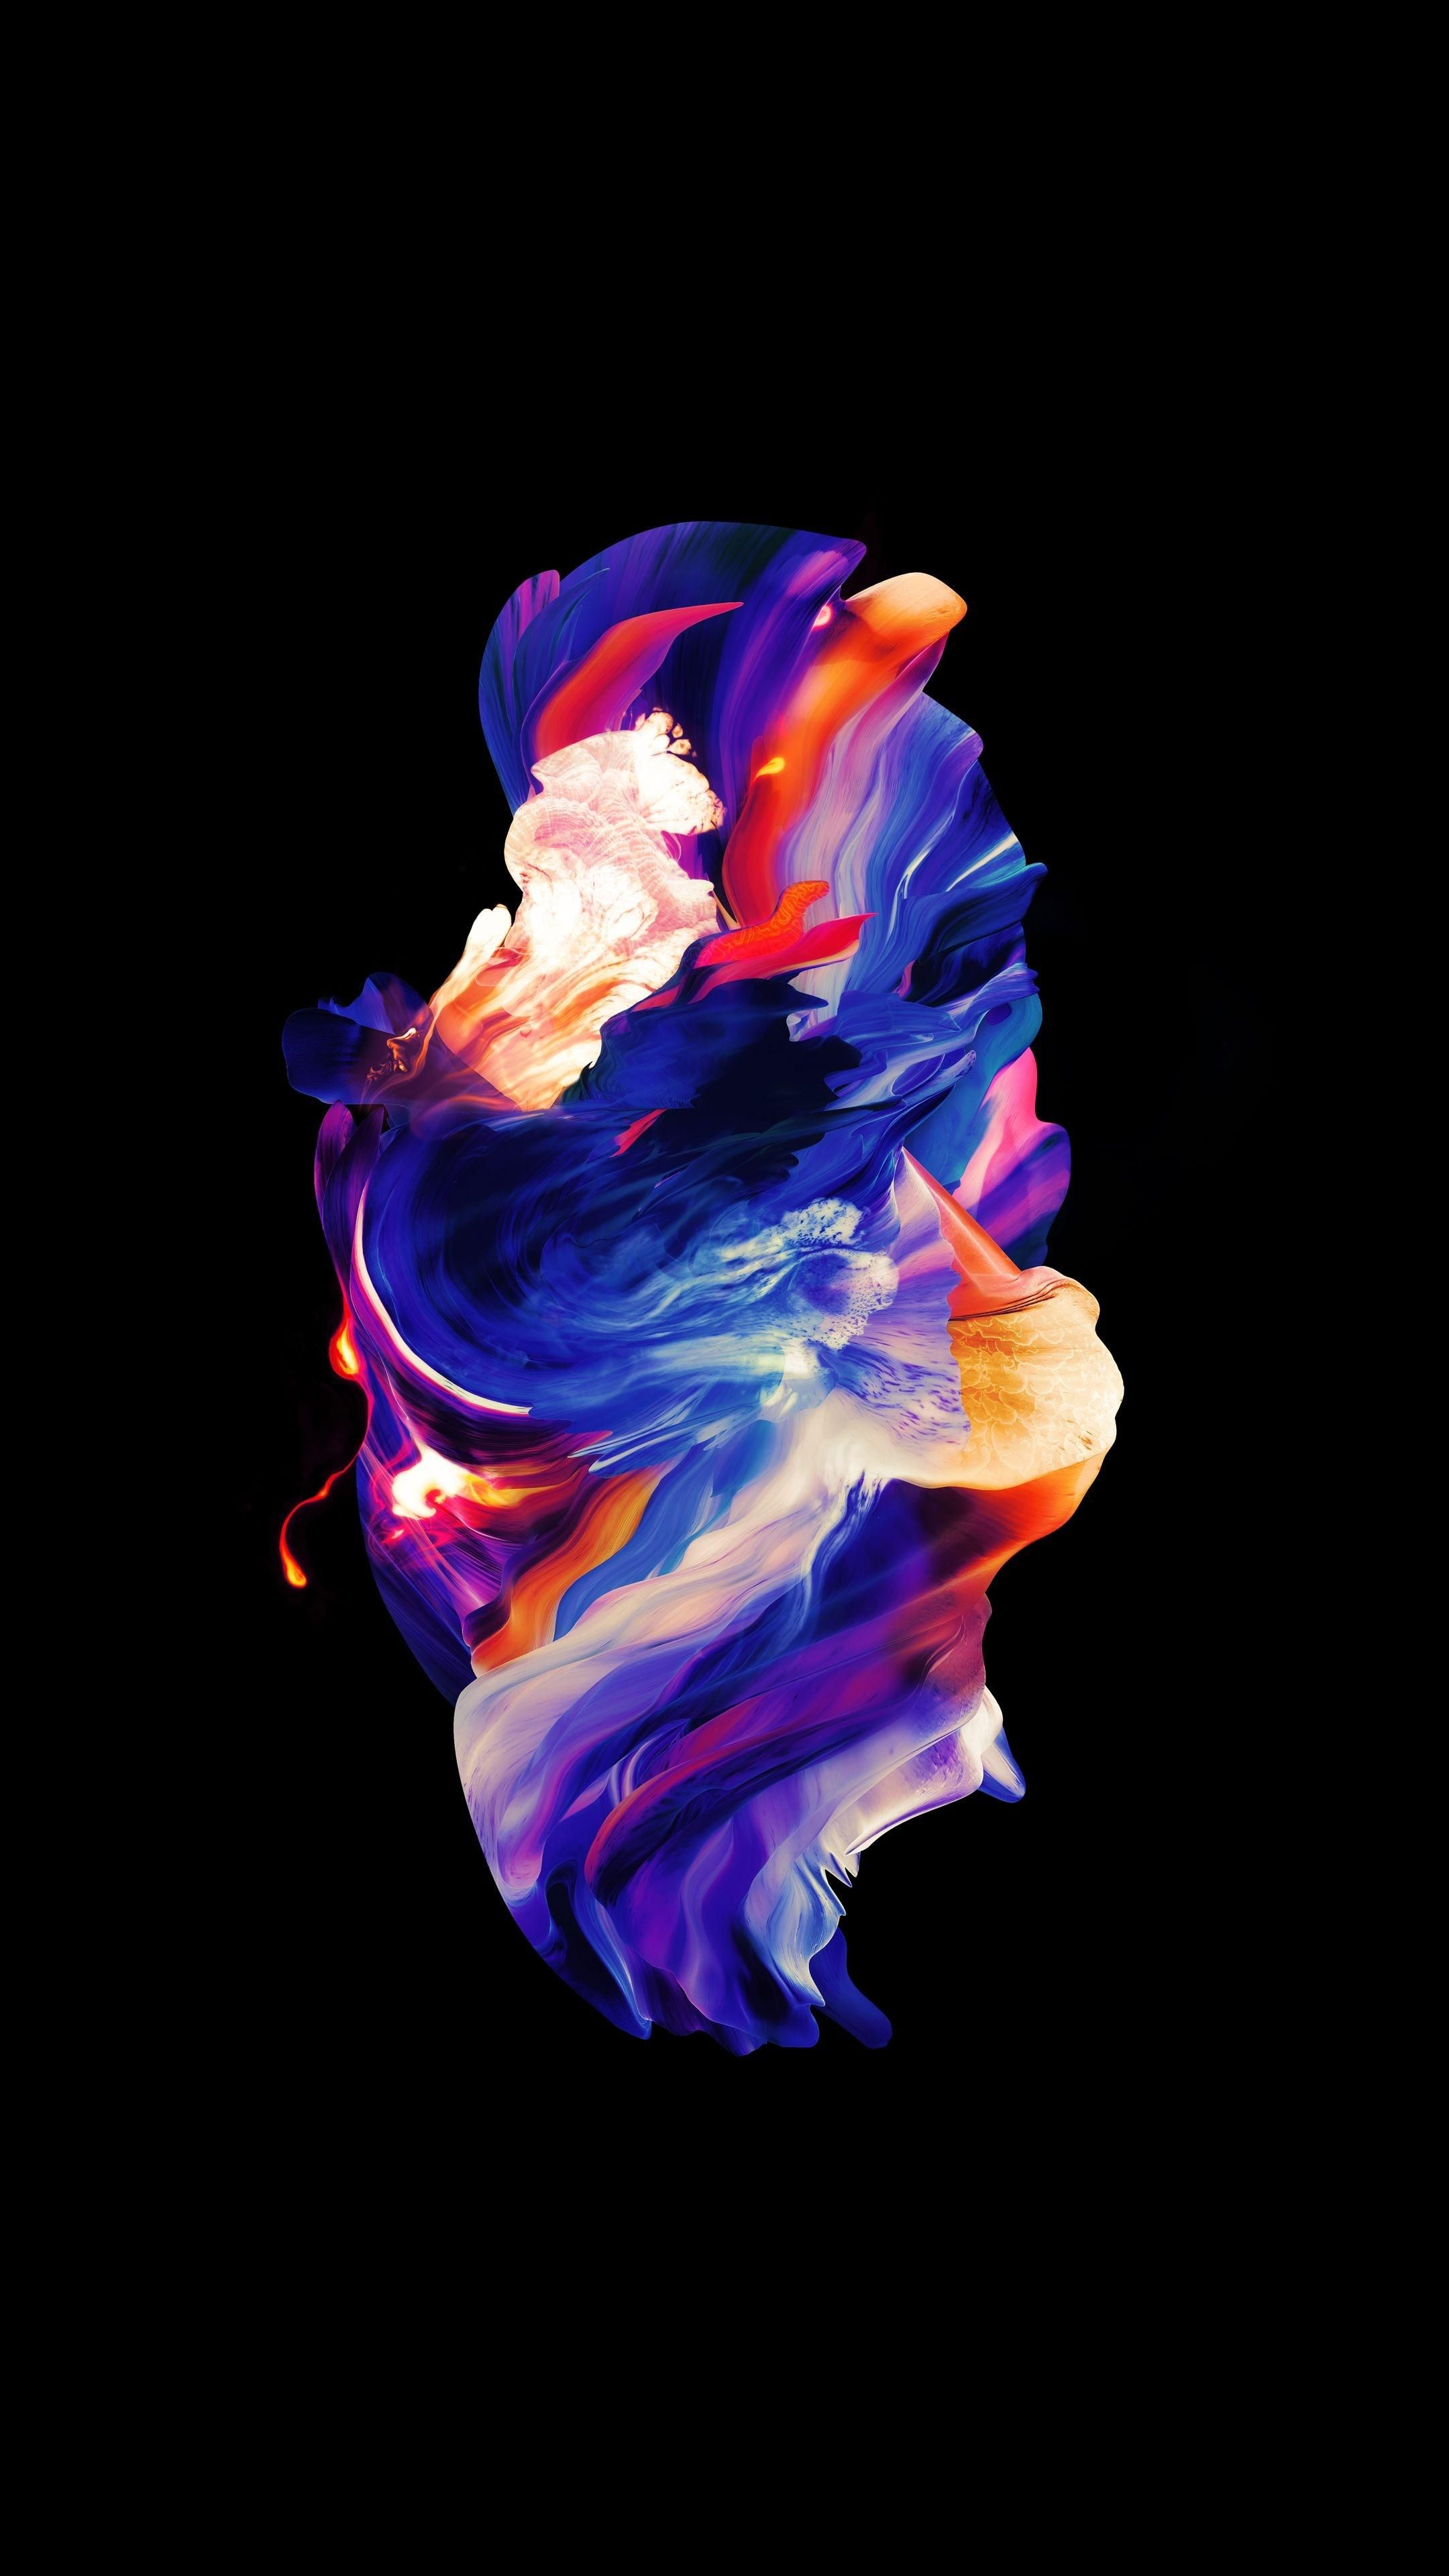 Amoled Multicolor Bubble Oneplus Wallpapers Minimalist Wallpaper Abstract Iphone Wallpaper